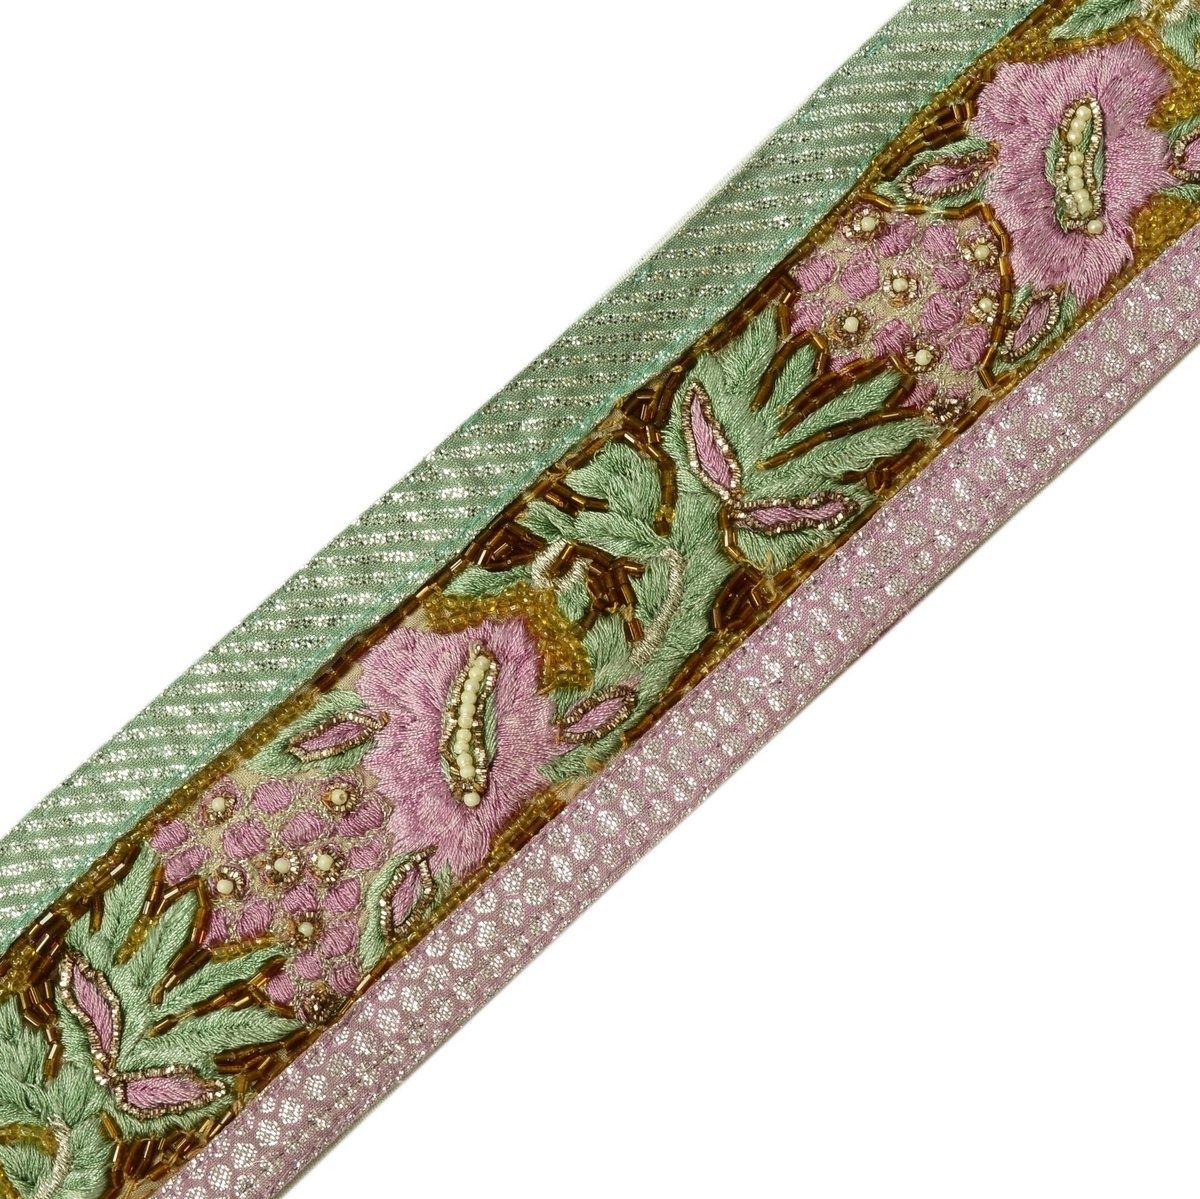 Vintage Saree Border Indian Craft Trim Hand Beaded Embroidered Ribbon Lace